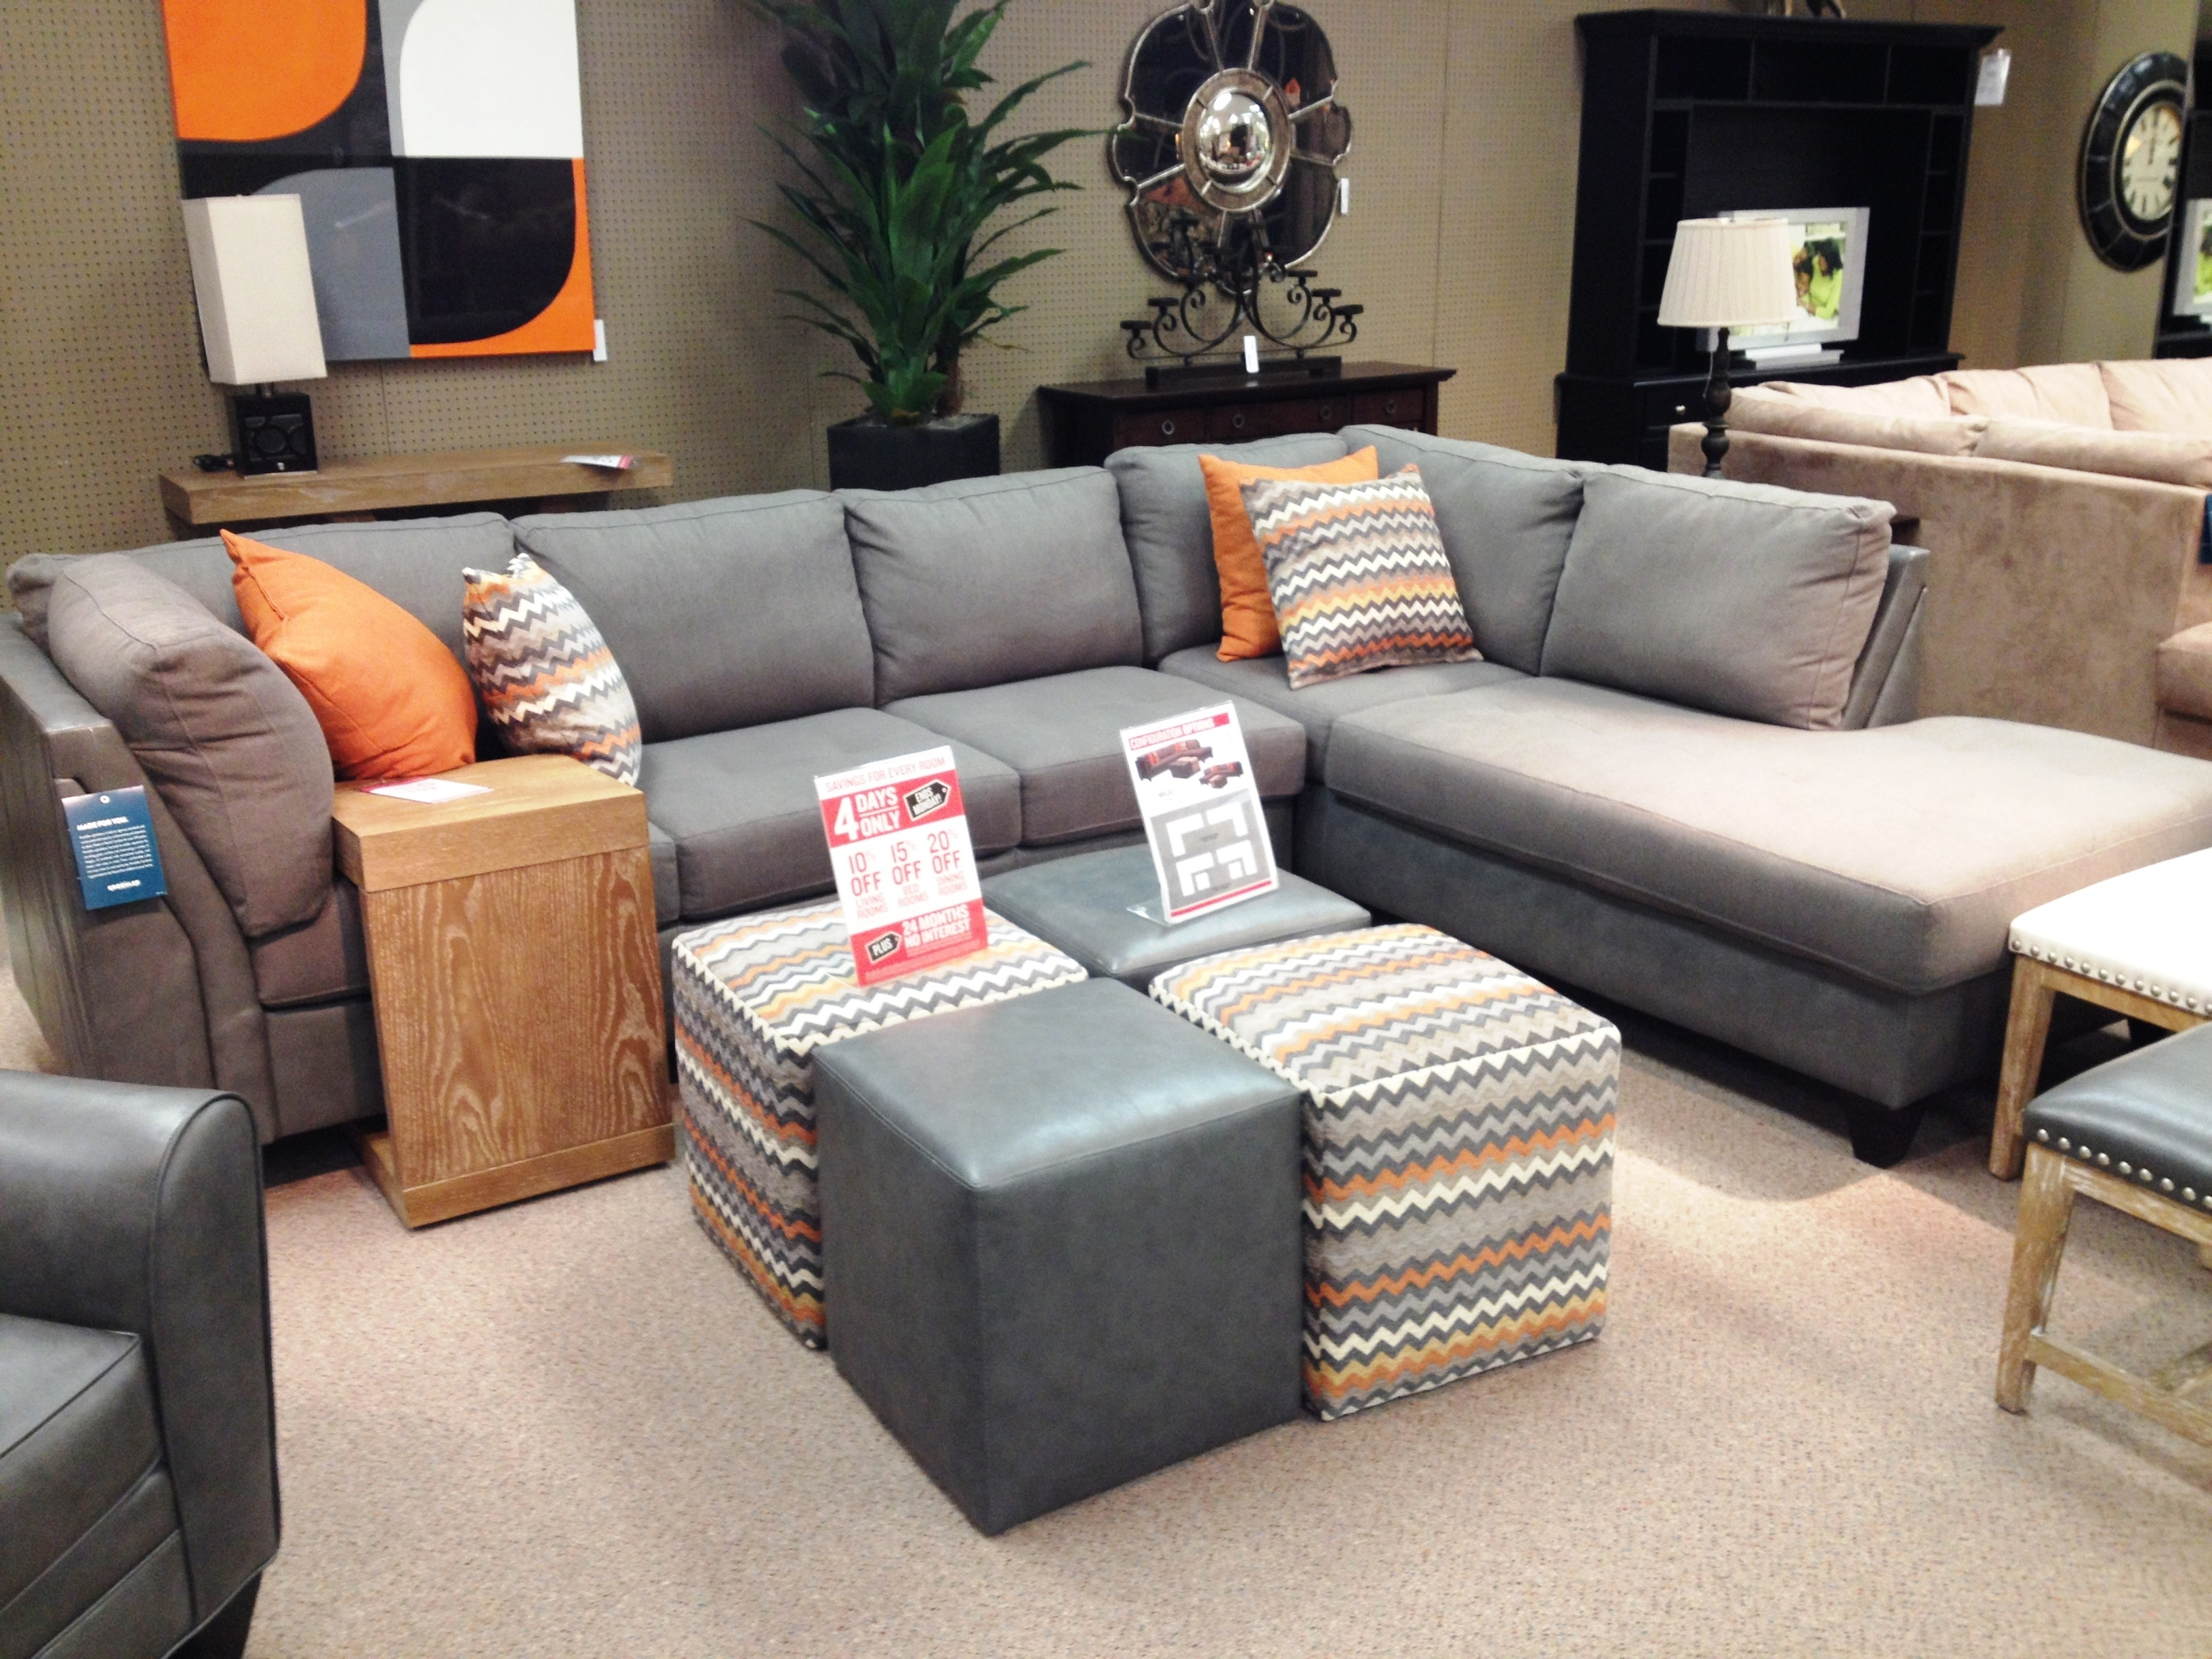 The Sectional Sofa Saga | Mid Century Modern(Ization) With Regard To Harper Down 3 Piece Sectionals (Image 23 of 25)